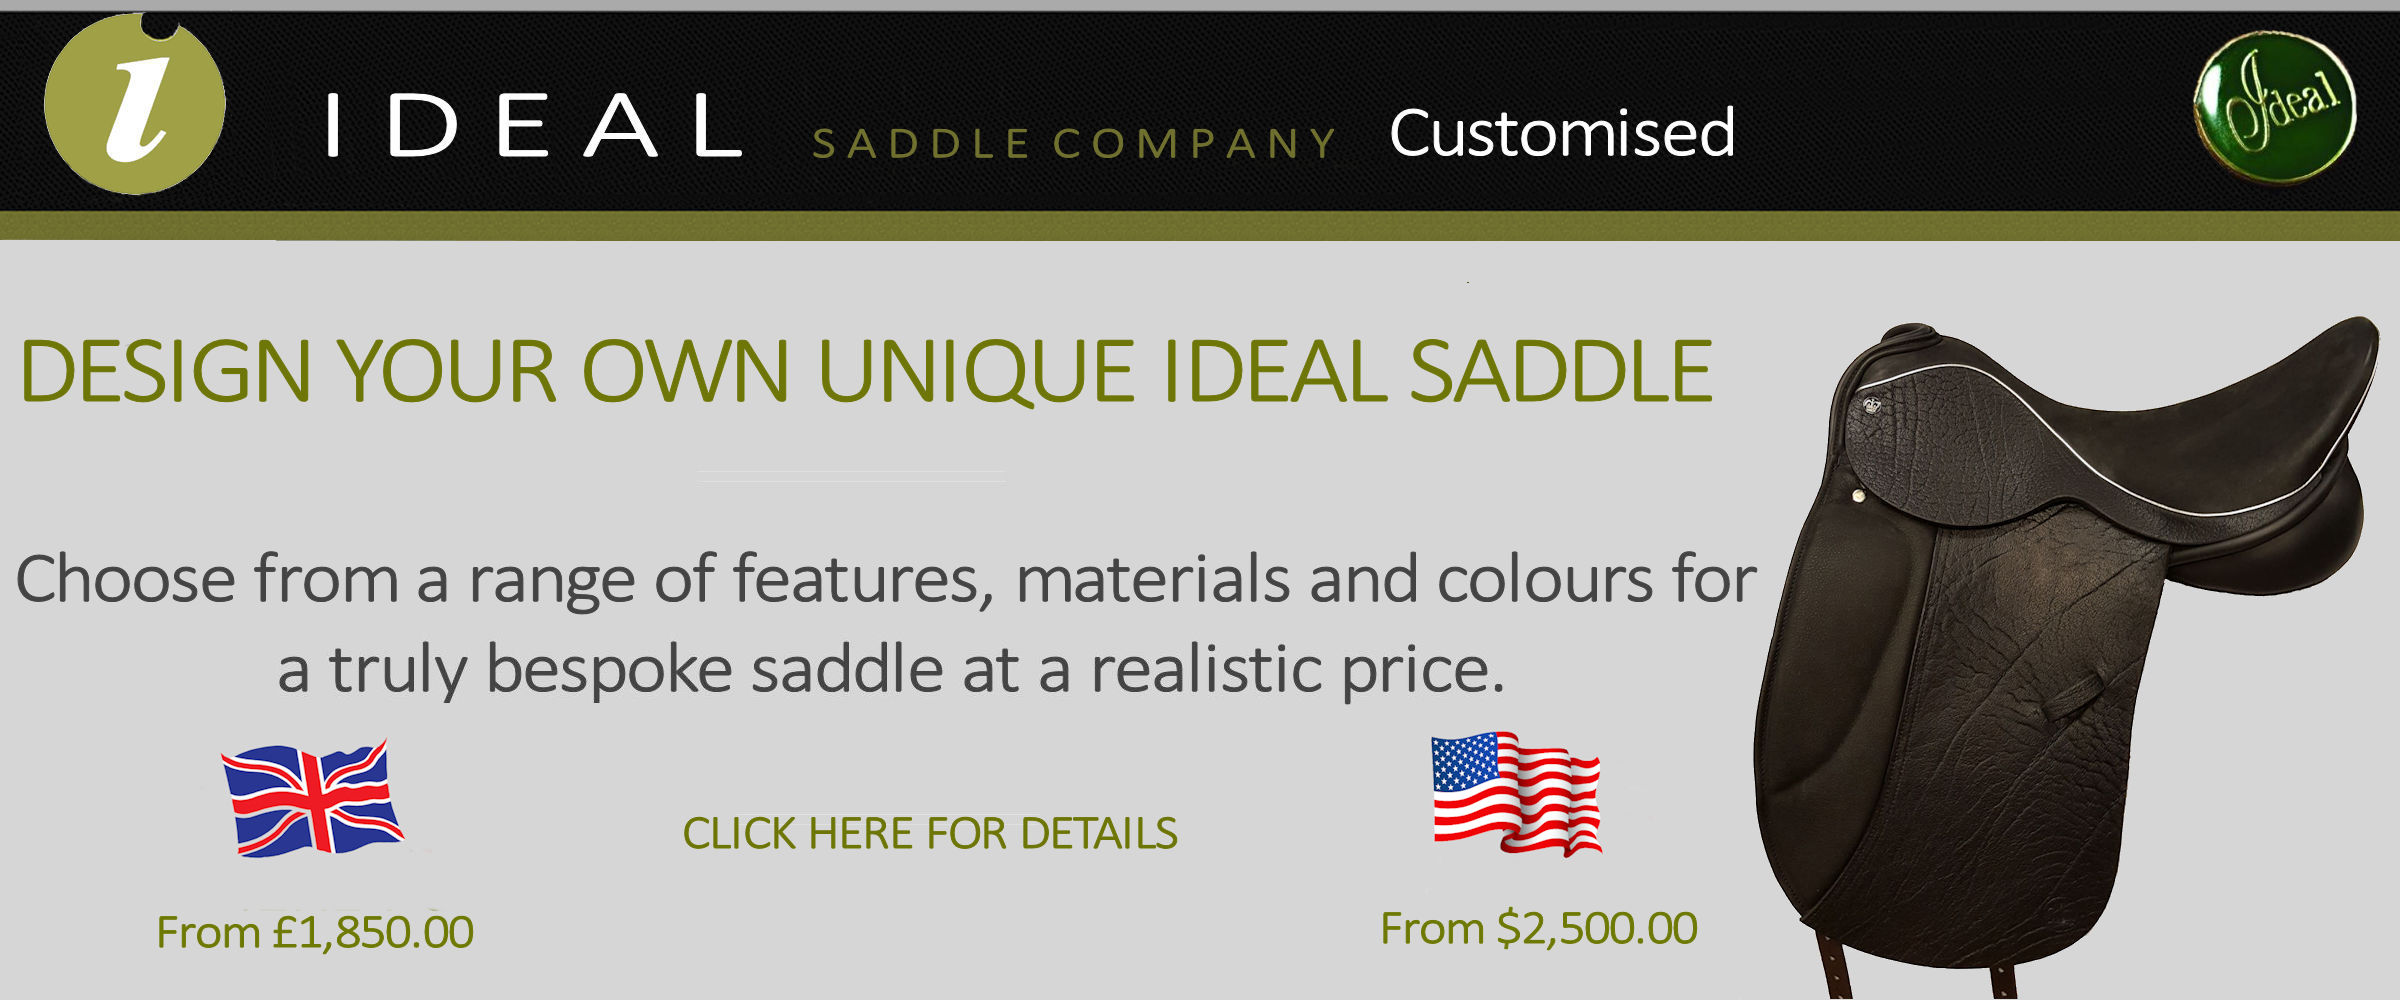 ideal customised saddles